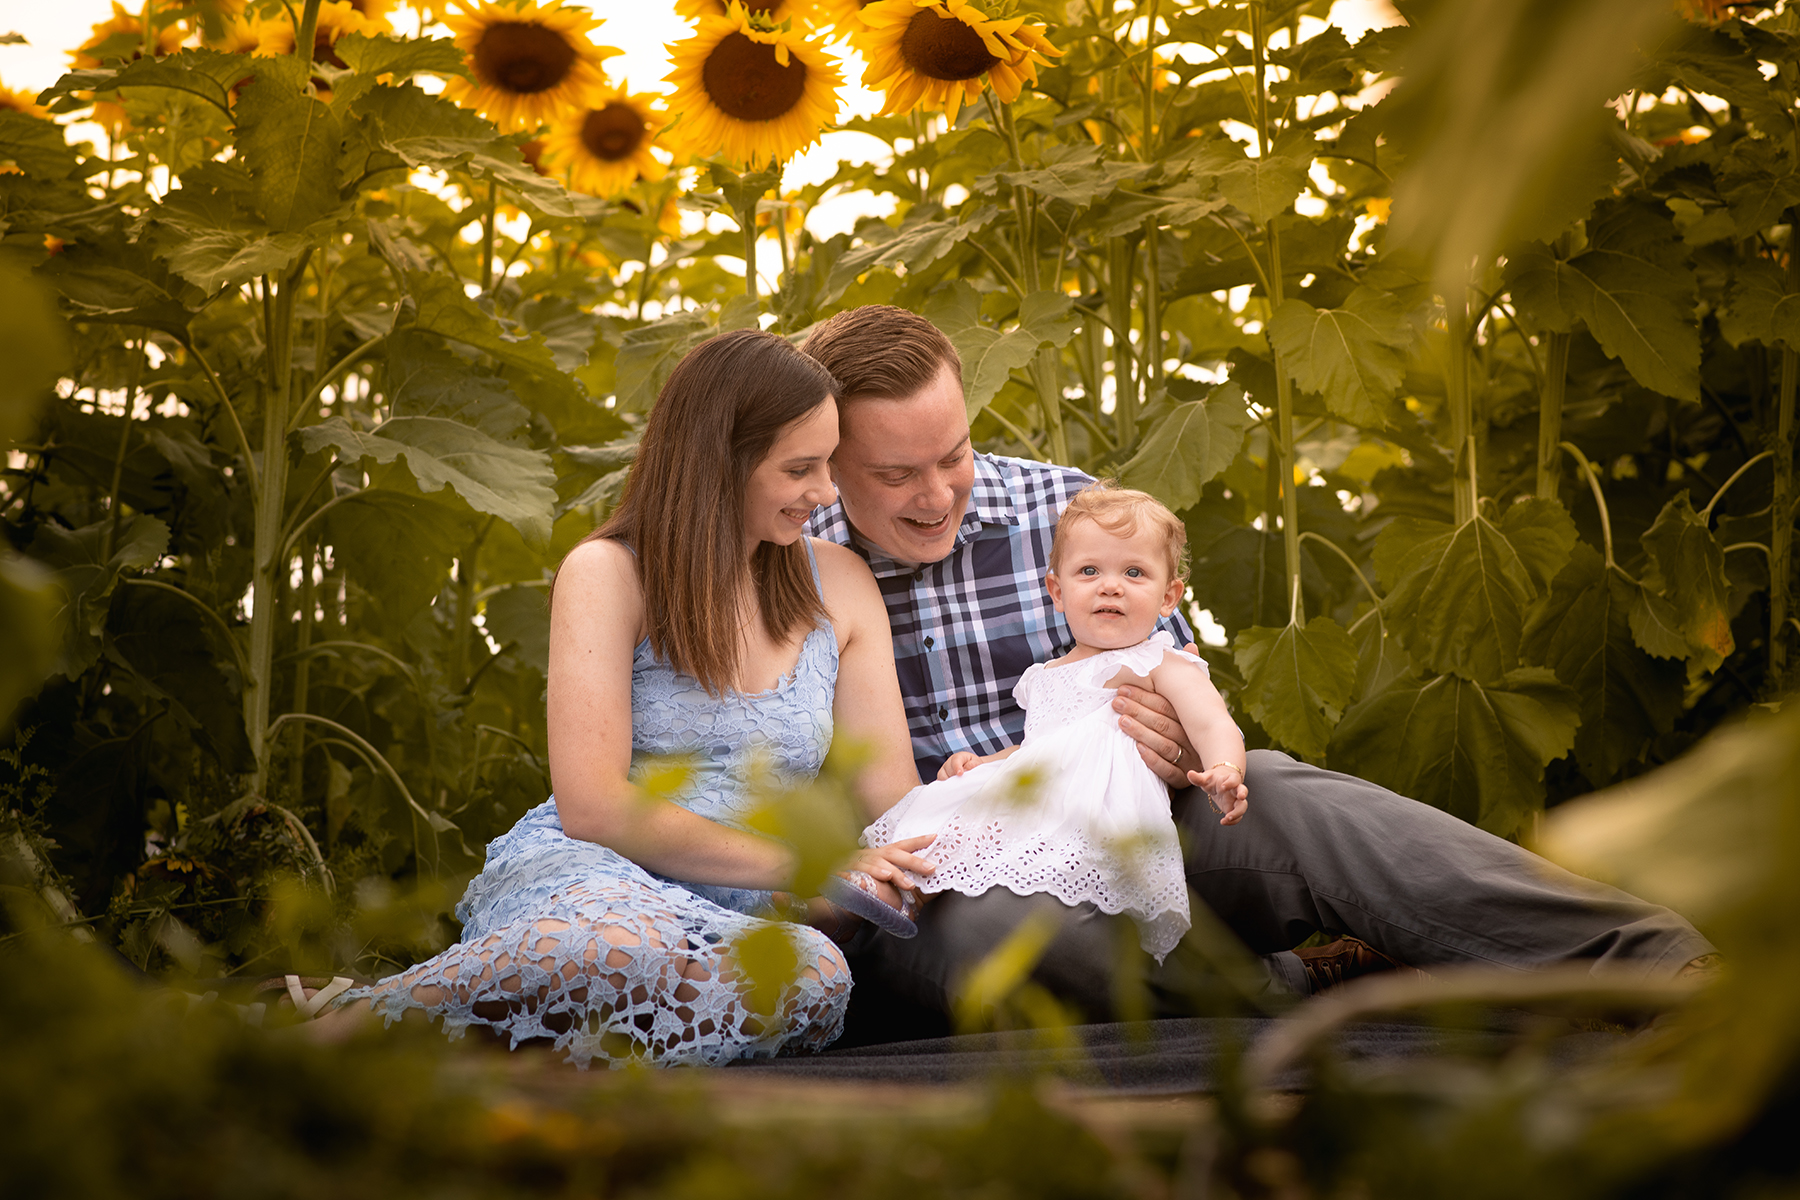 20200822_Wulff Family-11-sm